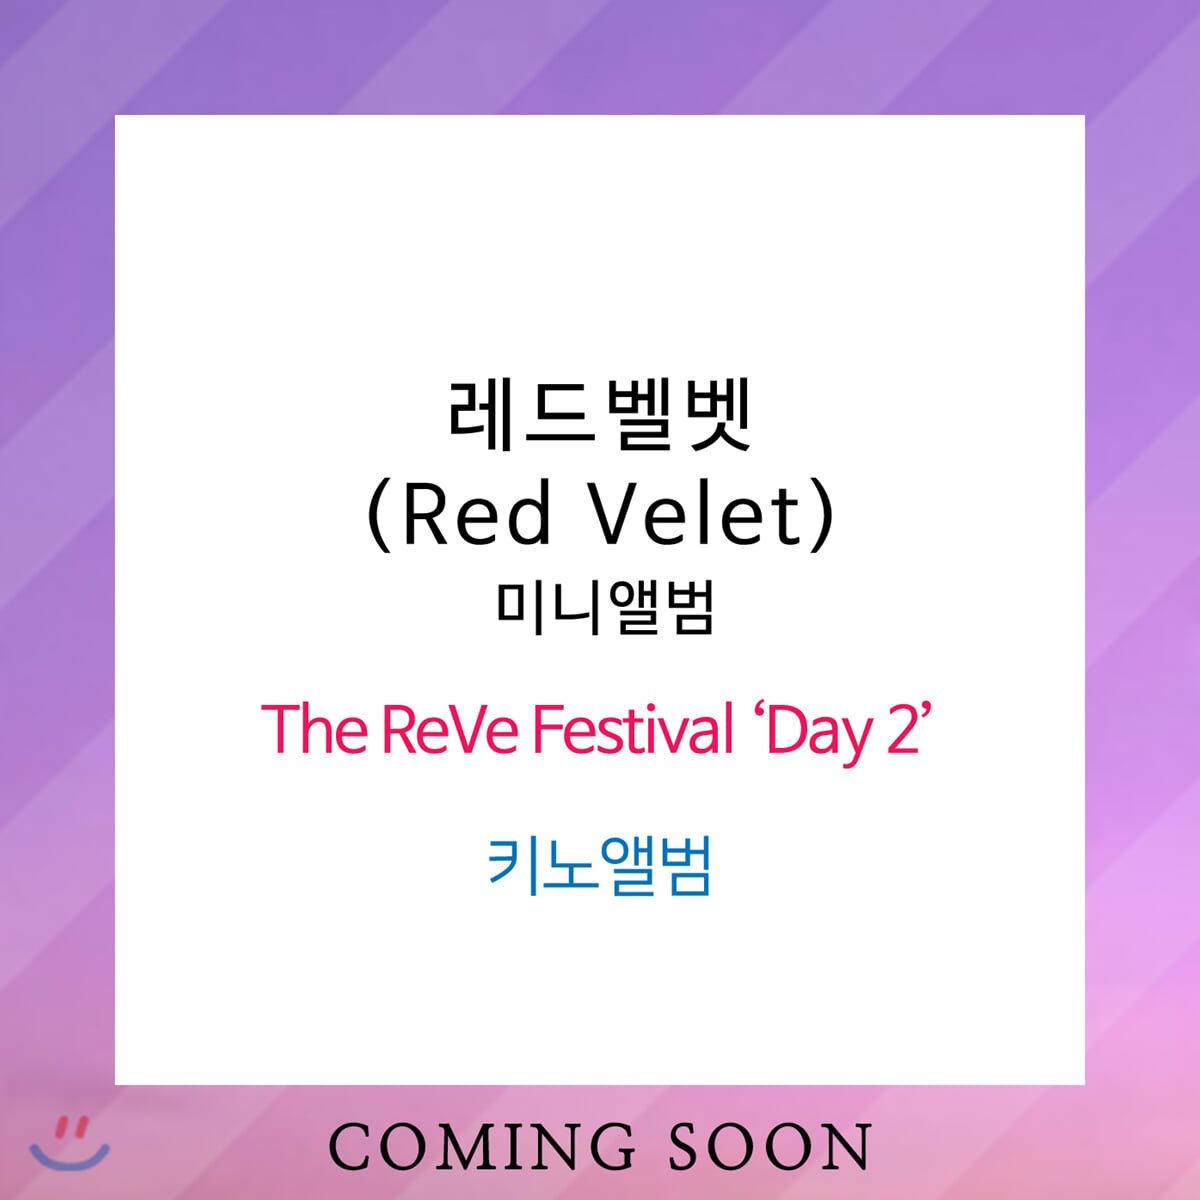 [INFO] The ReVe Festival Day 2 Kihno Album will be released on August 27.  Includes poster and 1 of 5 random photocards.  #REDVELVET @RVsmtown  http:// m.yes24.com/p/78215333     <br>http://pic.twitter.com/s3q7Mx4JZE